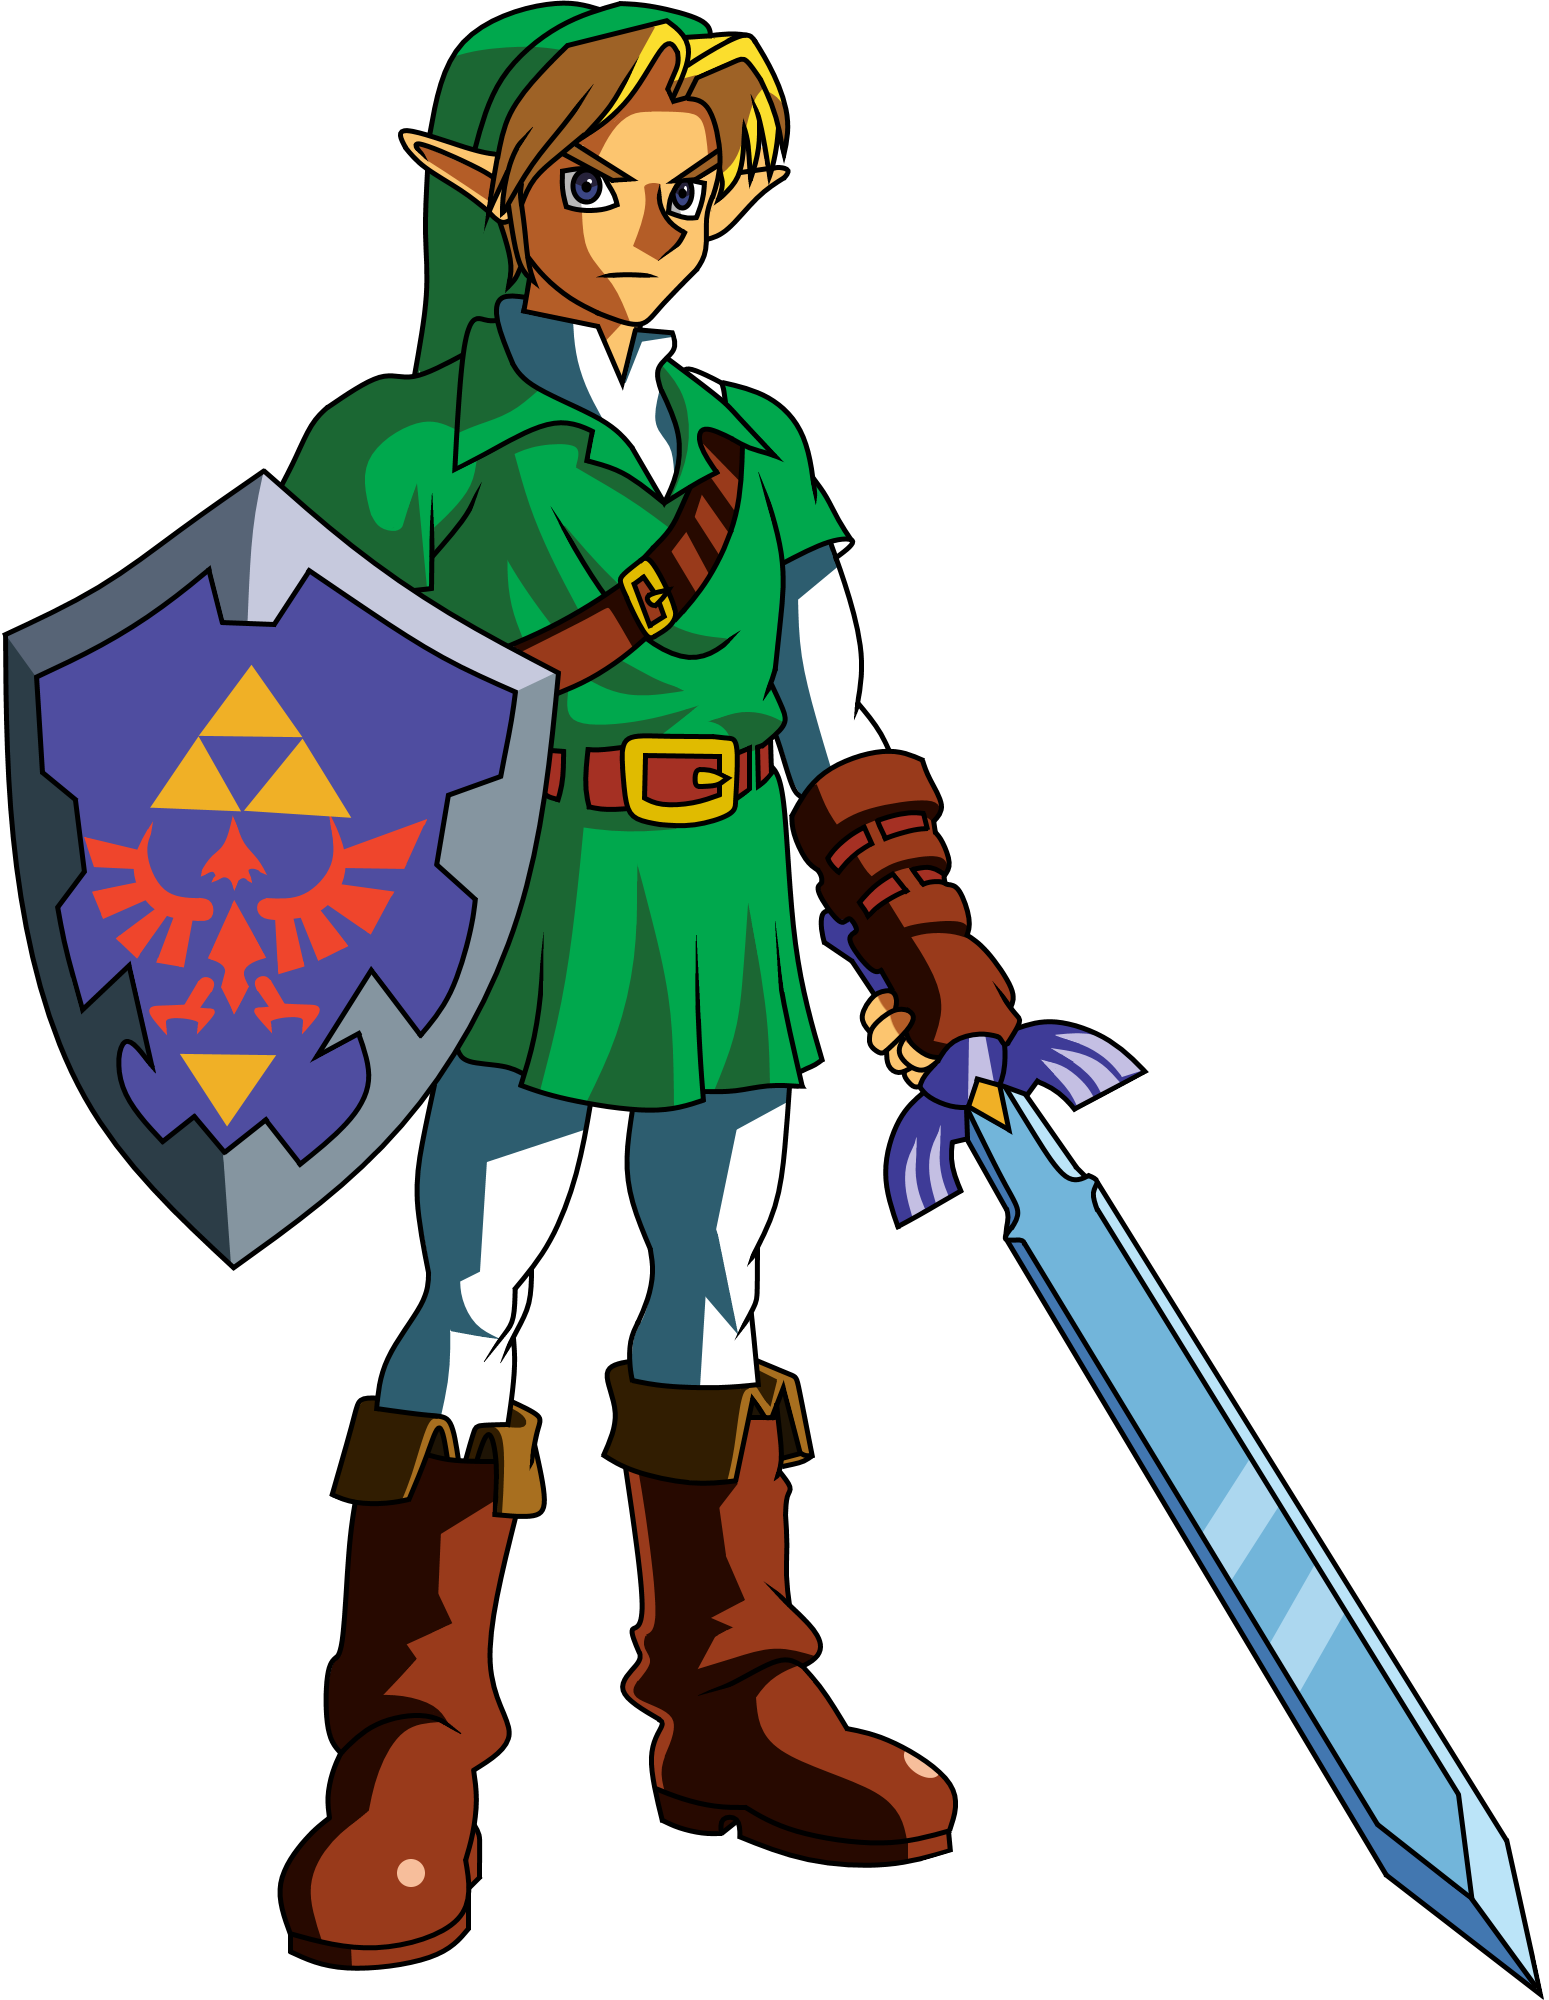 Zelda ocarina clipart picture freeuse download Link (Ocarina of time) clipart | Zelda Ocarina Of Time ... picture freeuse download